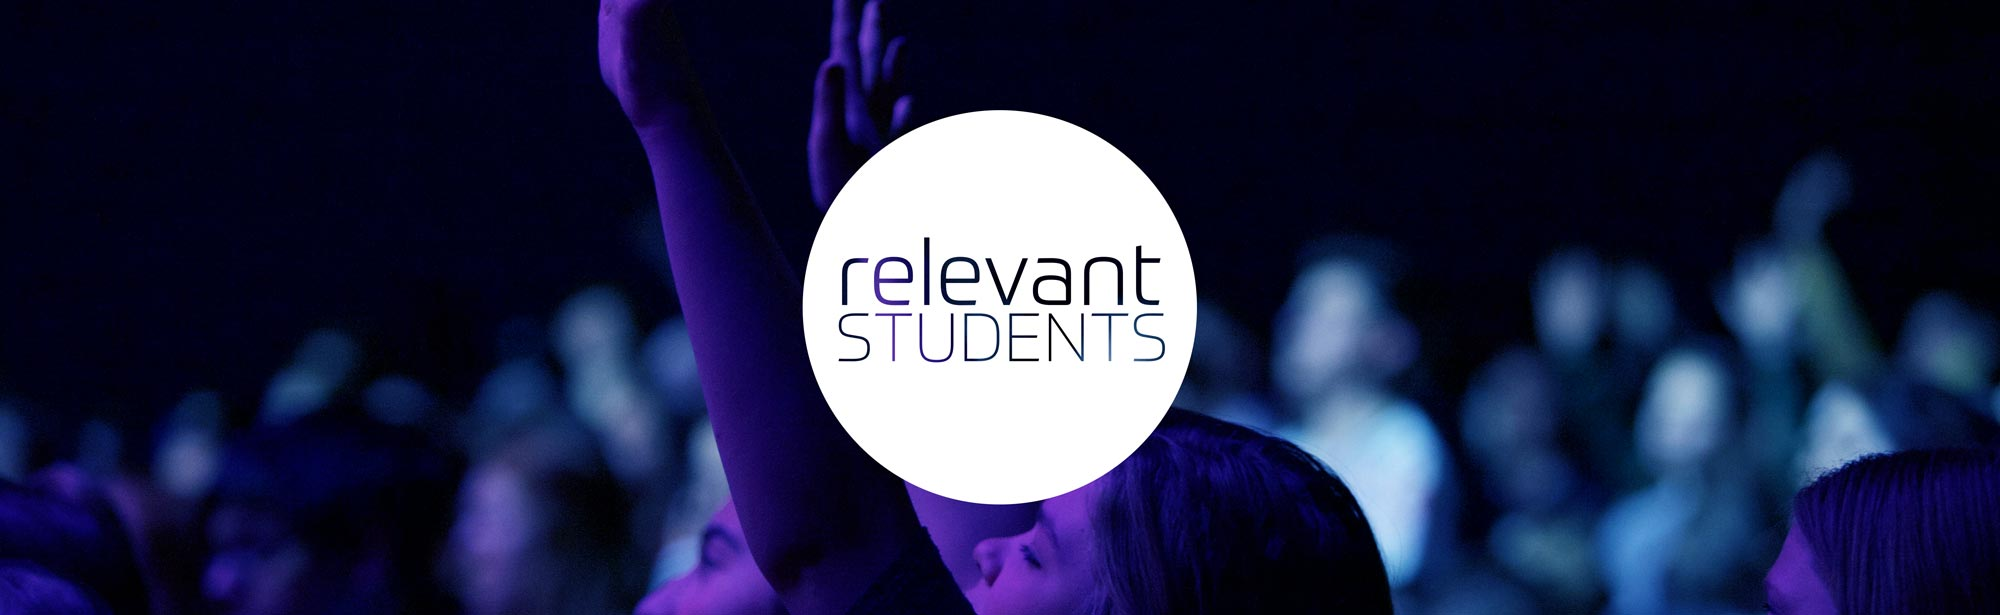 Students - Relevant Student Ministry - Grace Community Church